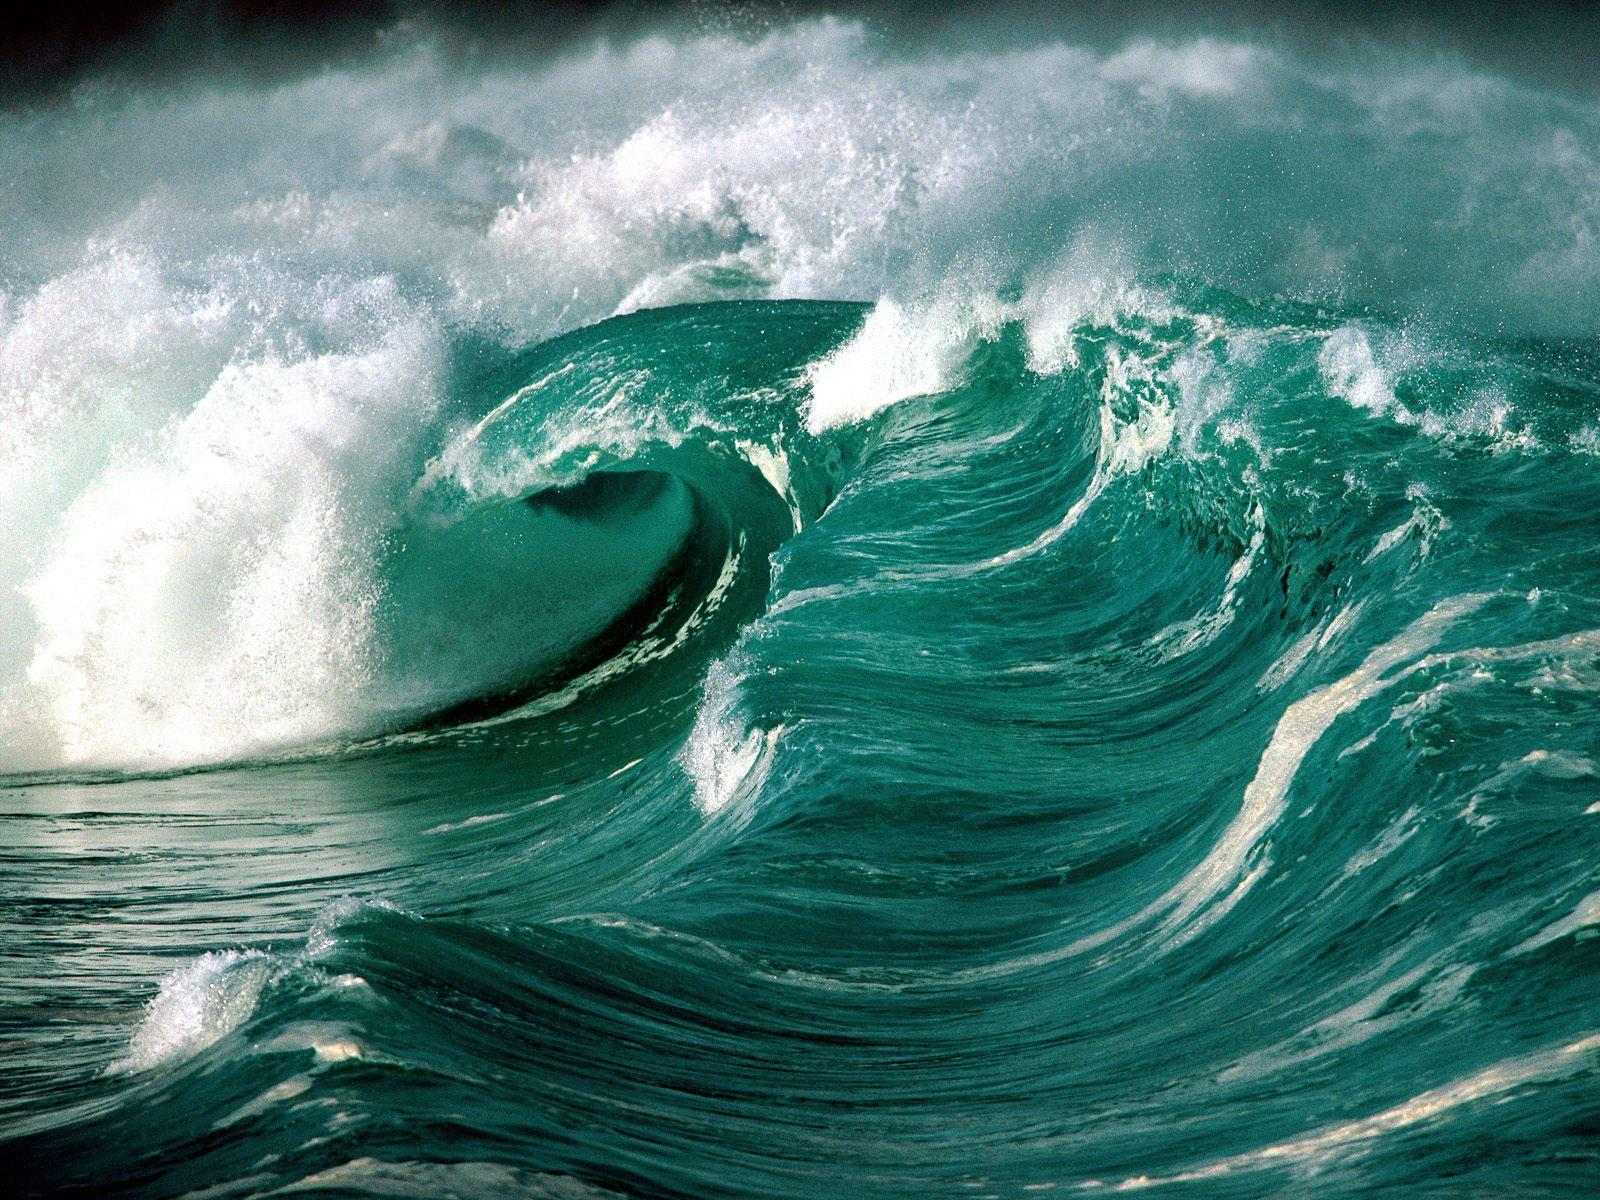 Tsunami waves on ocean free desktop background - free wallpaper image